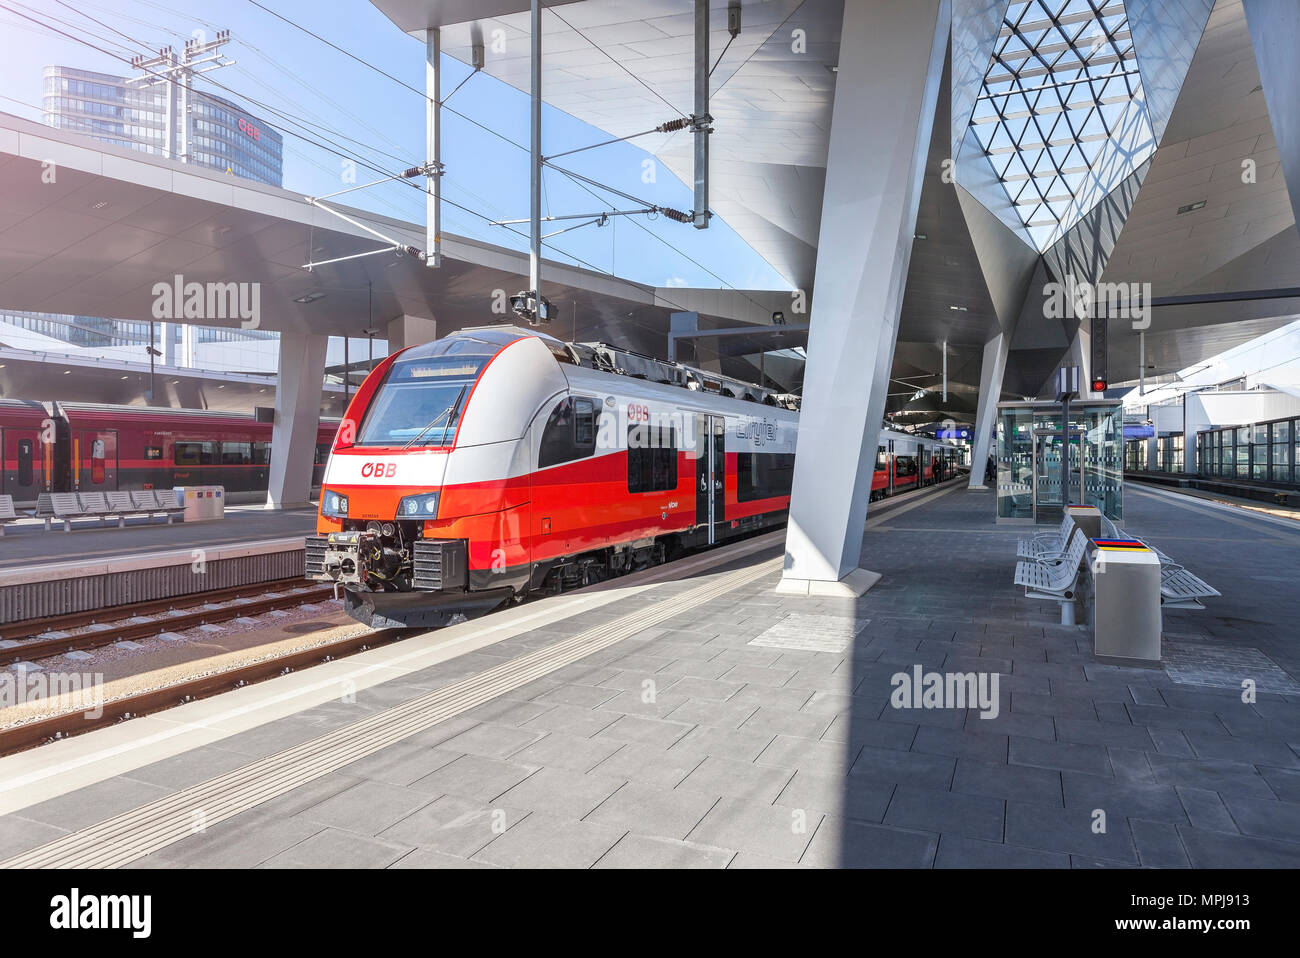 The new Main Railway Station of Vienna with the new OEBB Train Cityjet. - Stock Image